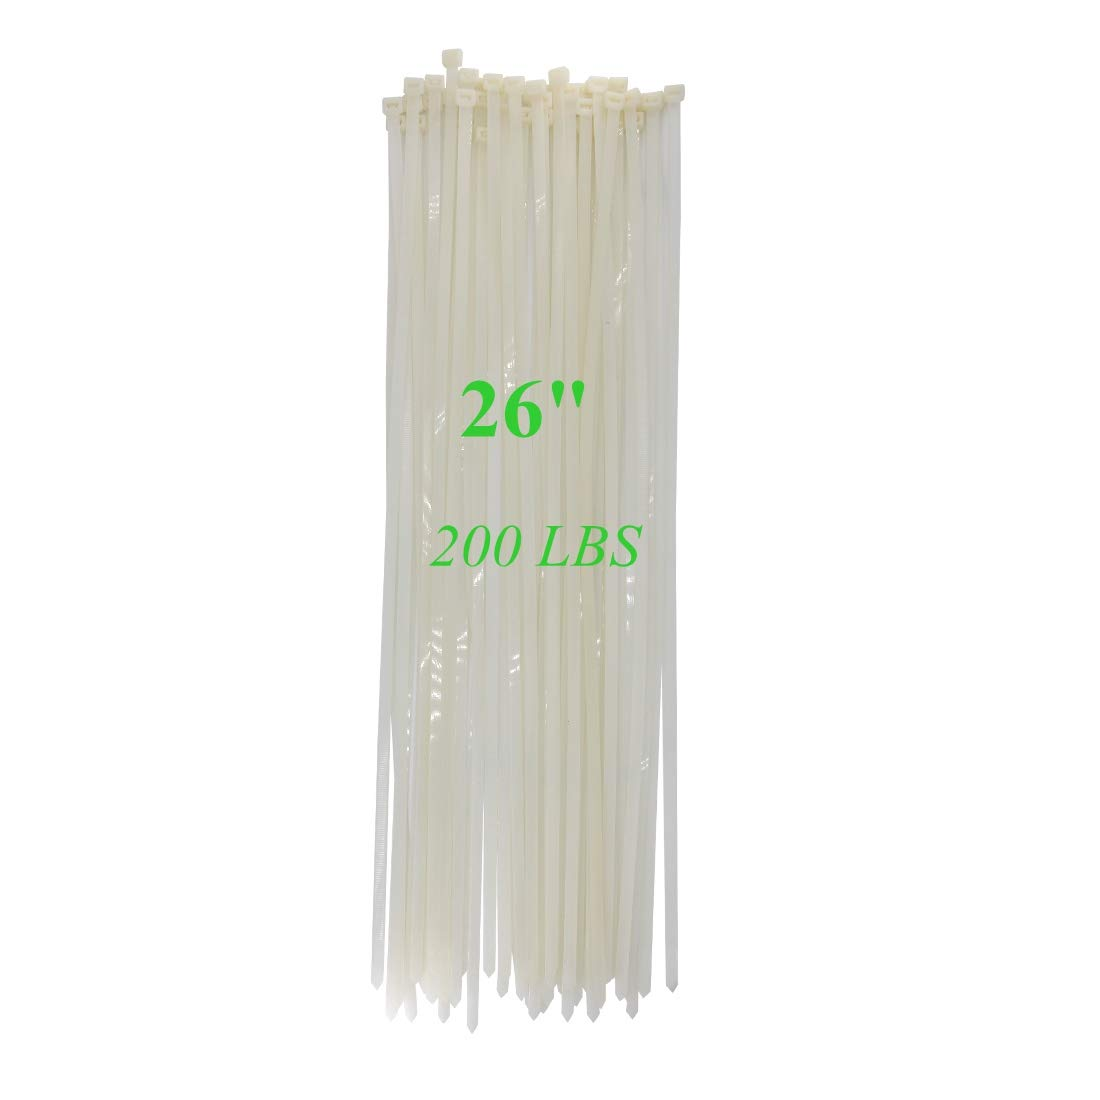 Long Heavy Duty 26 Inch Nylon Zip Cable Ties Clear-Large 200 LBS Tensile Strength-Heavy Duty Industrial Durable Strong Cable Ties- 50 Pack - Indoor Outdoor Garden Use(26'',200LB, White)